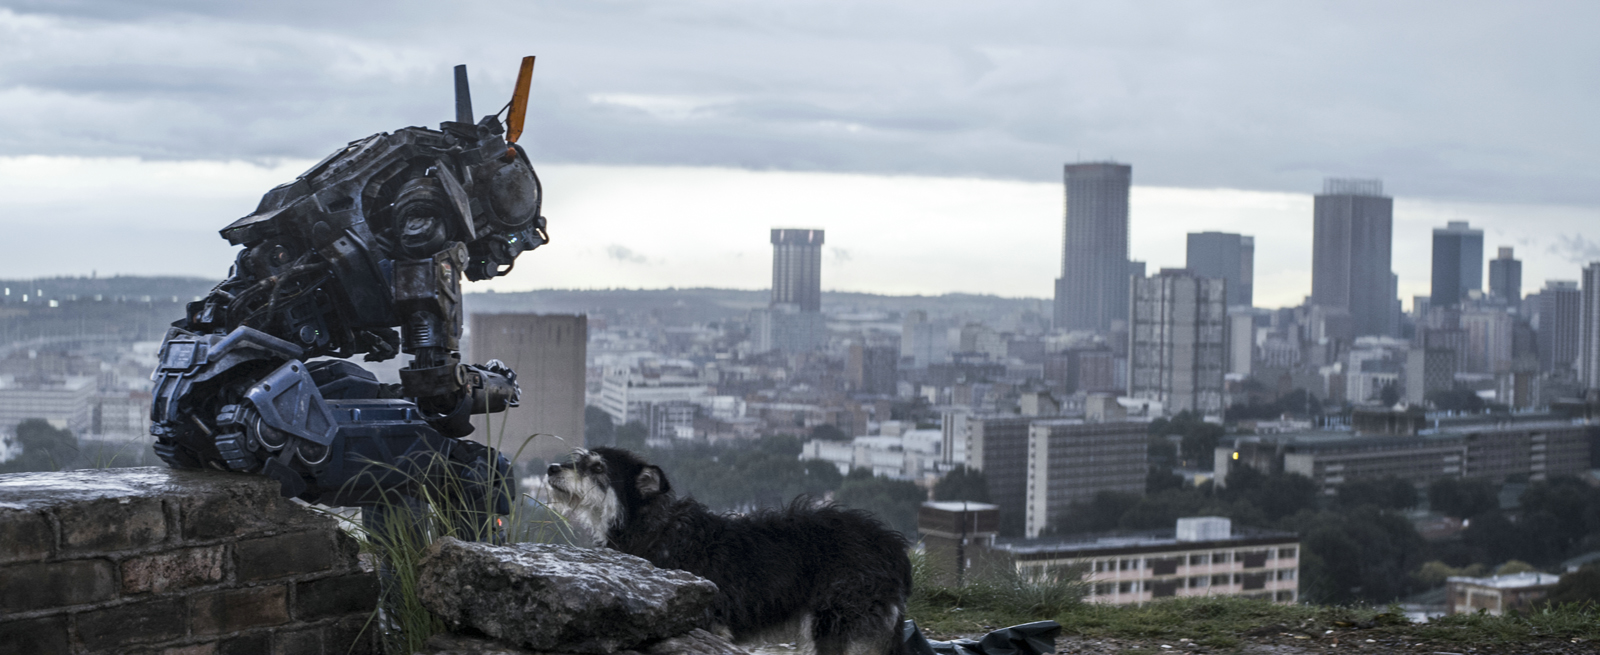 CHAPPIE - Image 1 du film movie Neill Blomkamp Robot SF 2015 - Go with the Blog